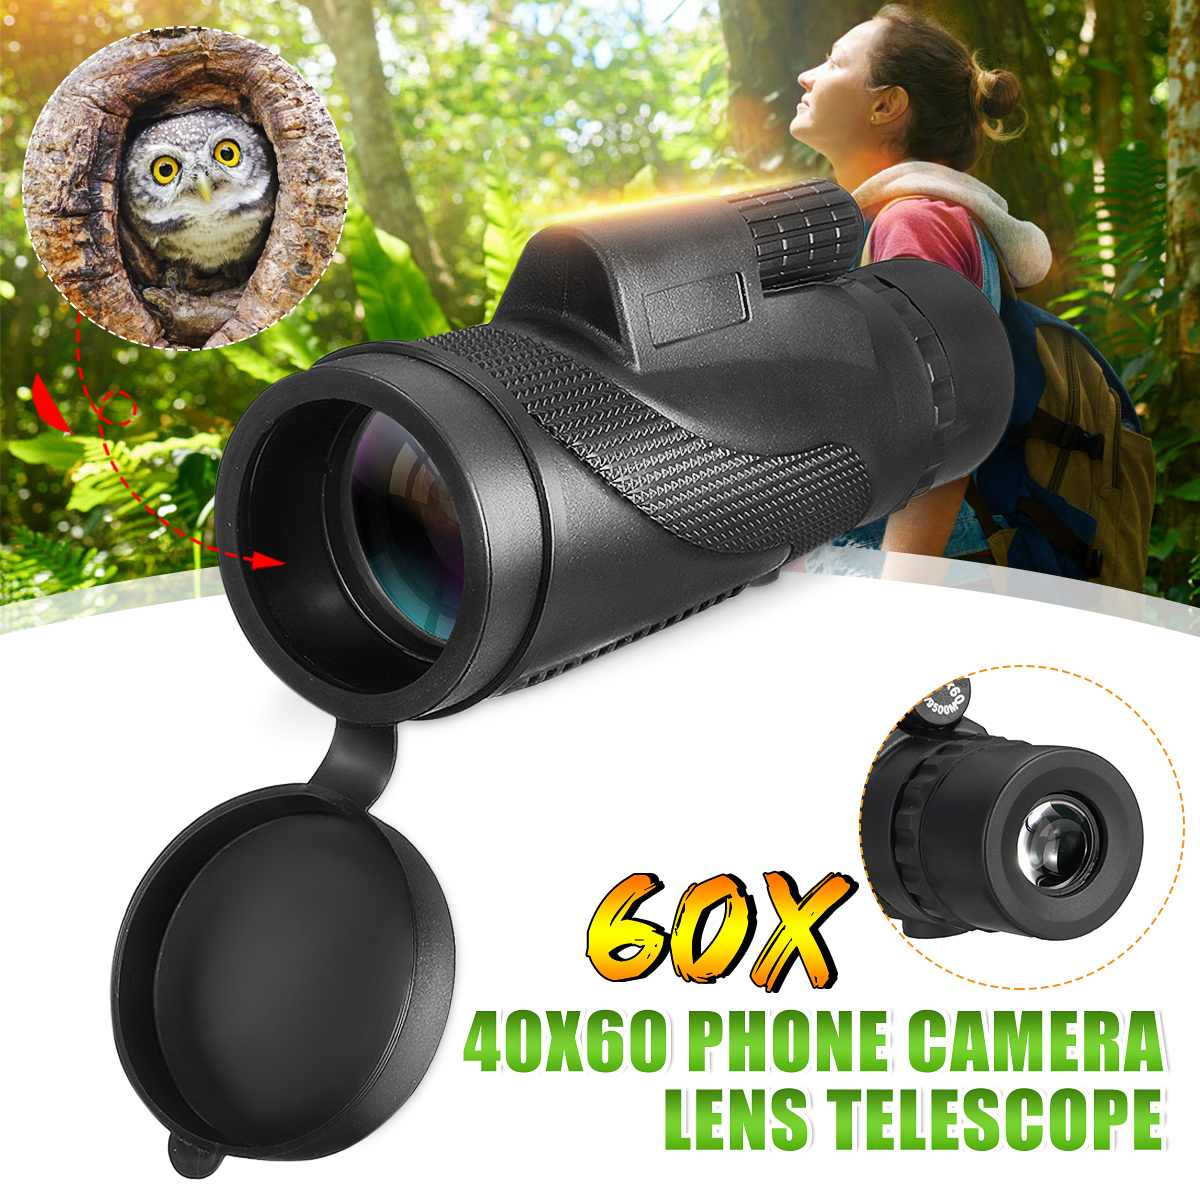 40x60 Monocular Powerful Binoculars High Quality Zoom Great Handheld Telescope lll night vision Military HD Professional Hunting40x60 Monocular Powerful Binoculars High Quality Zoom Great Handheld Telescope lll night vision Military HD Professional Hunting